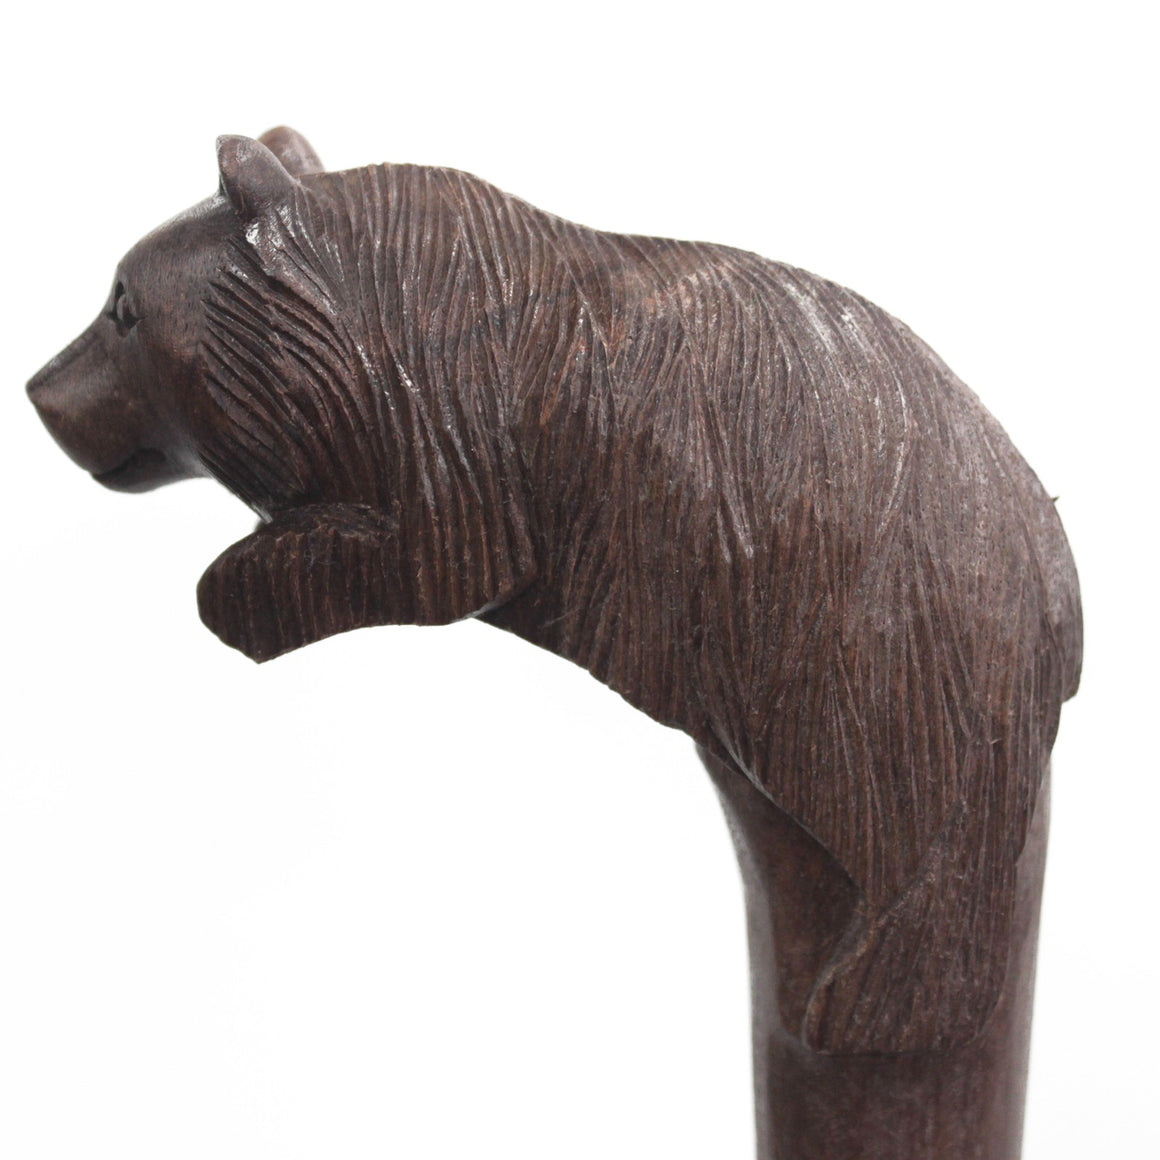 Wooden Walking Stick - Bear